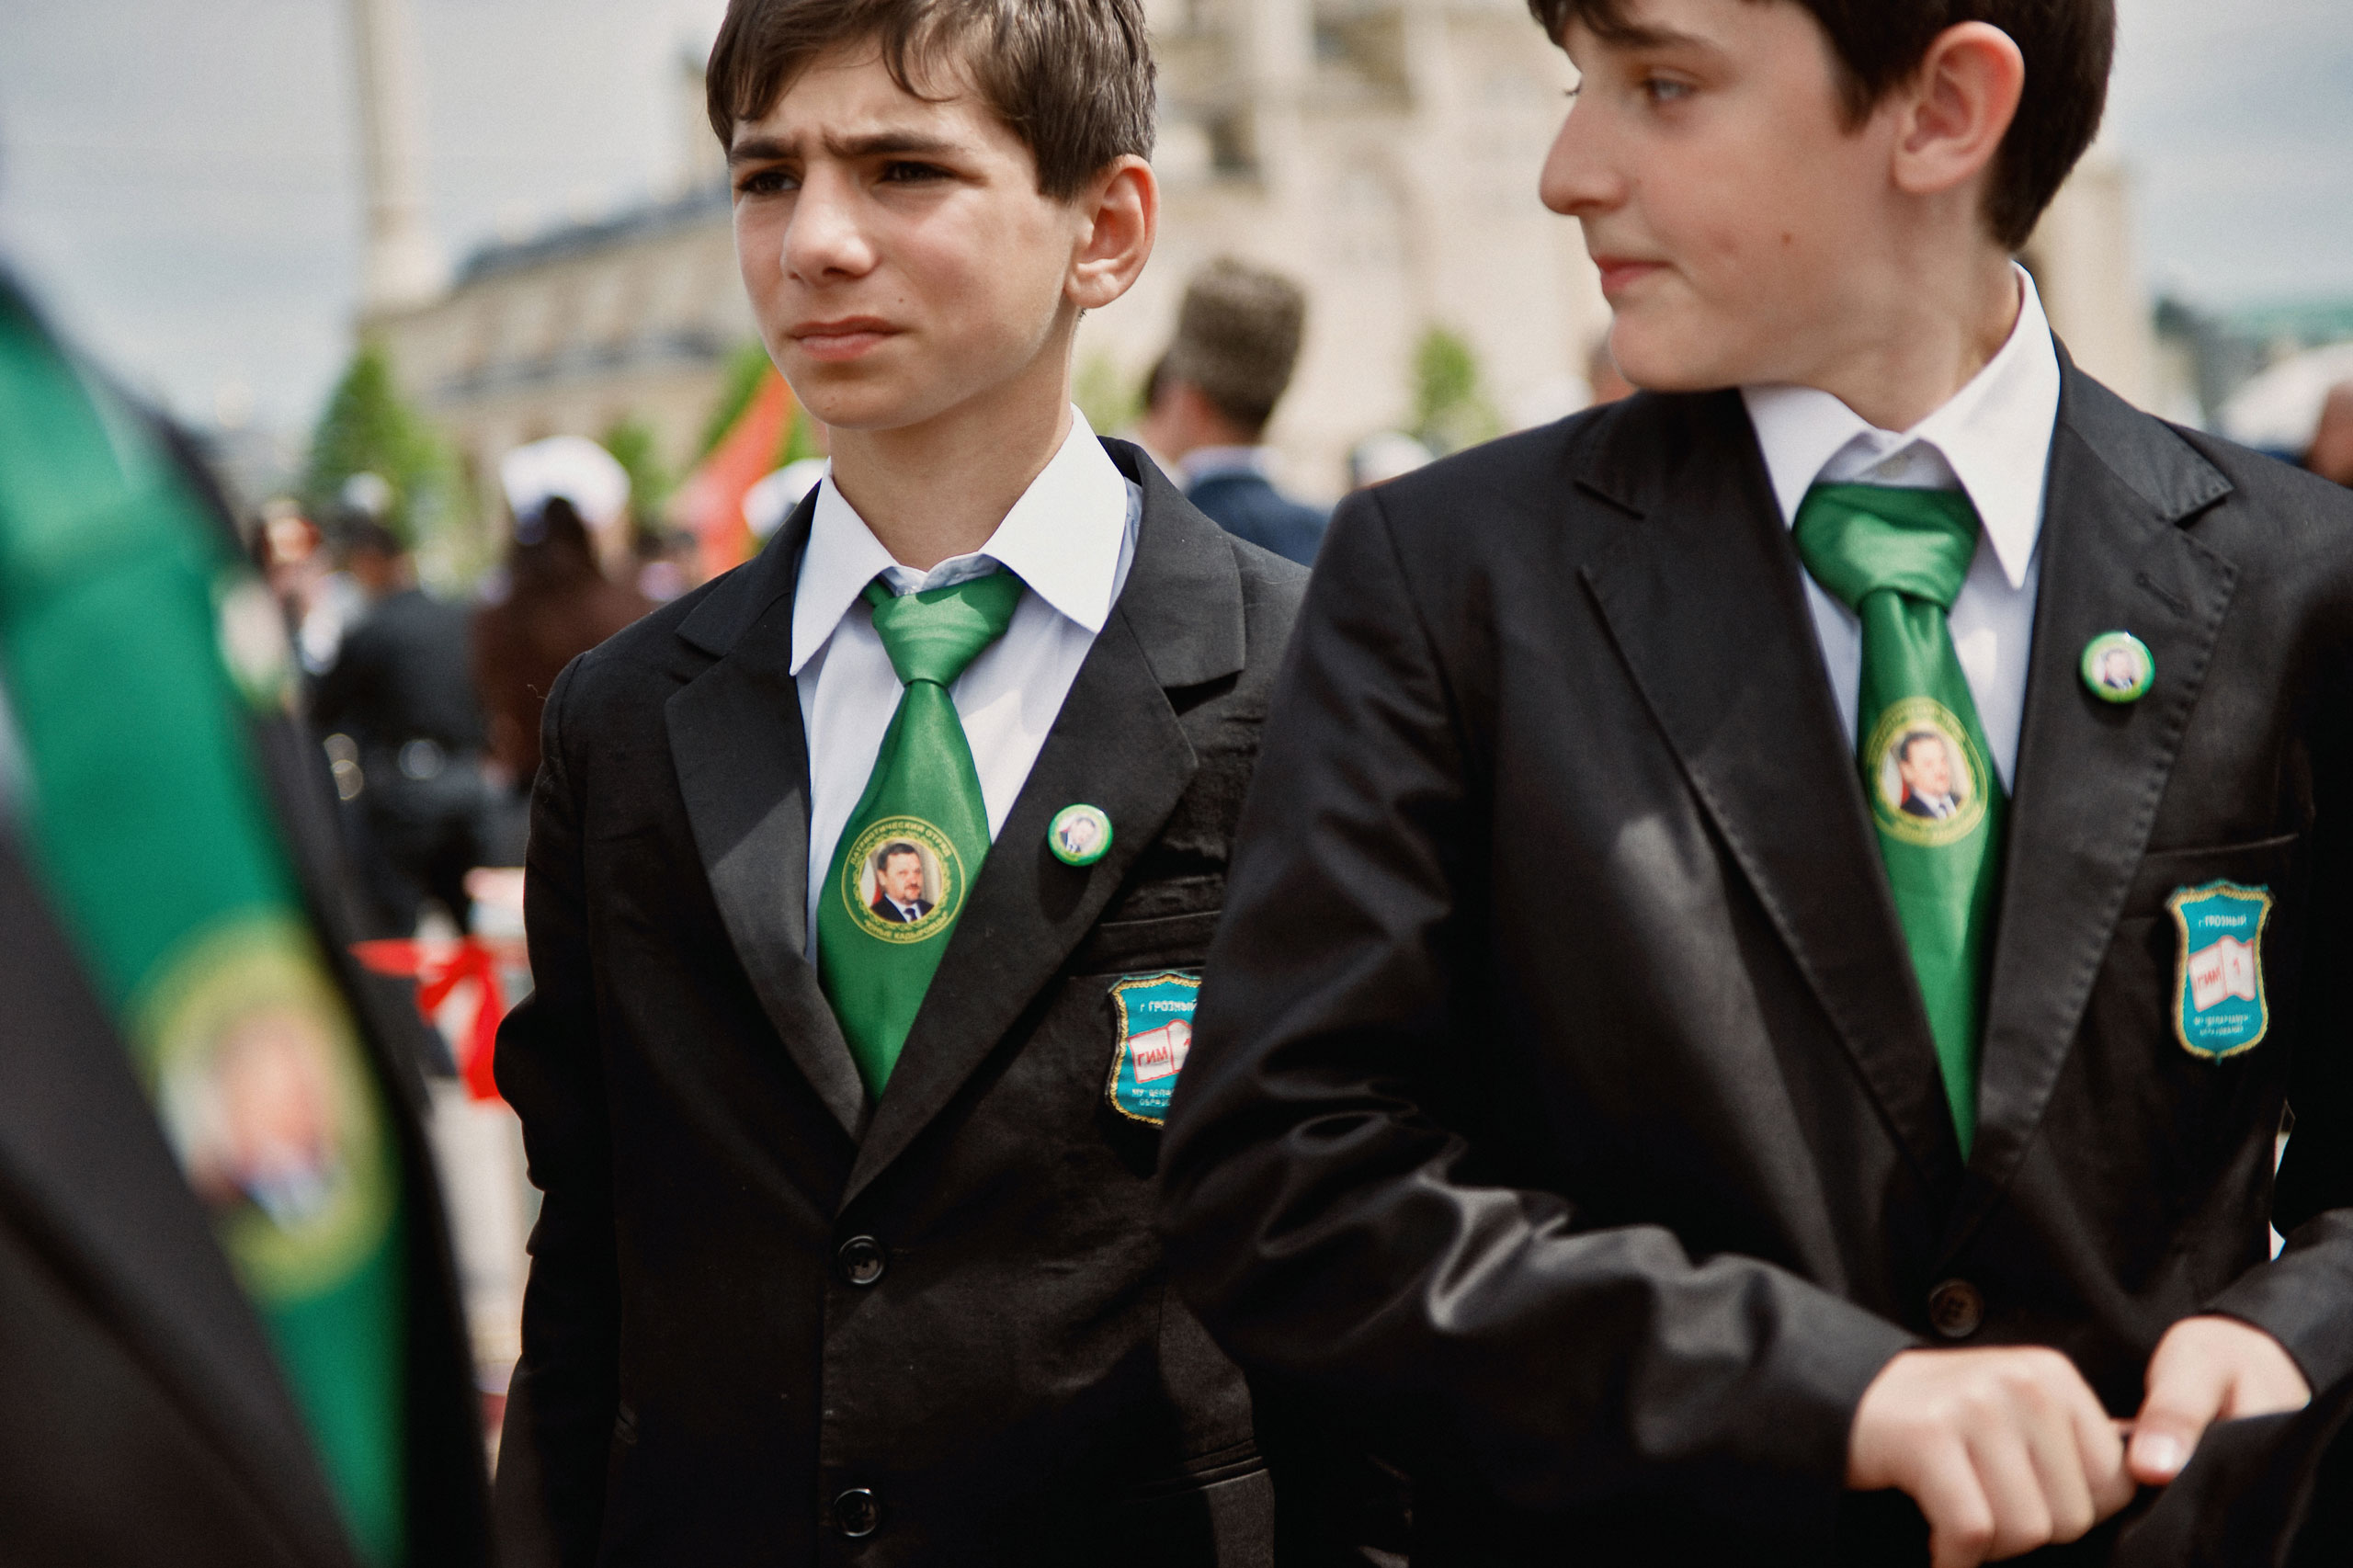 Chechen students wear ties picturing their leader Akhmad Kadyrov, at a WWII Victory Day Parade in Grozny, Chechnya, May 2010.